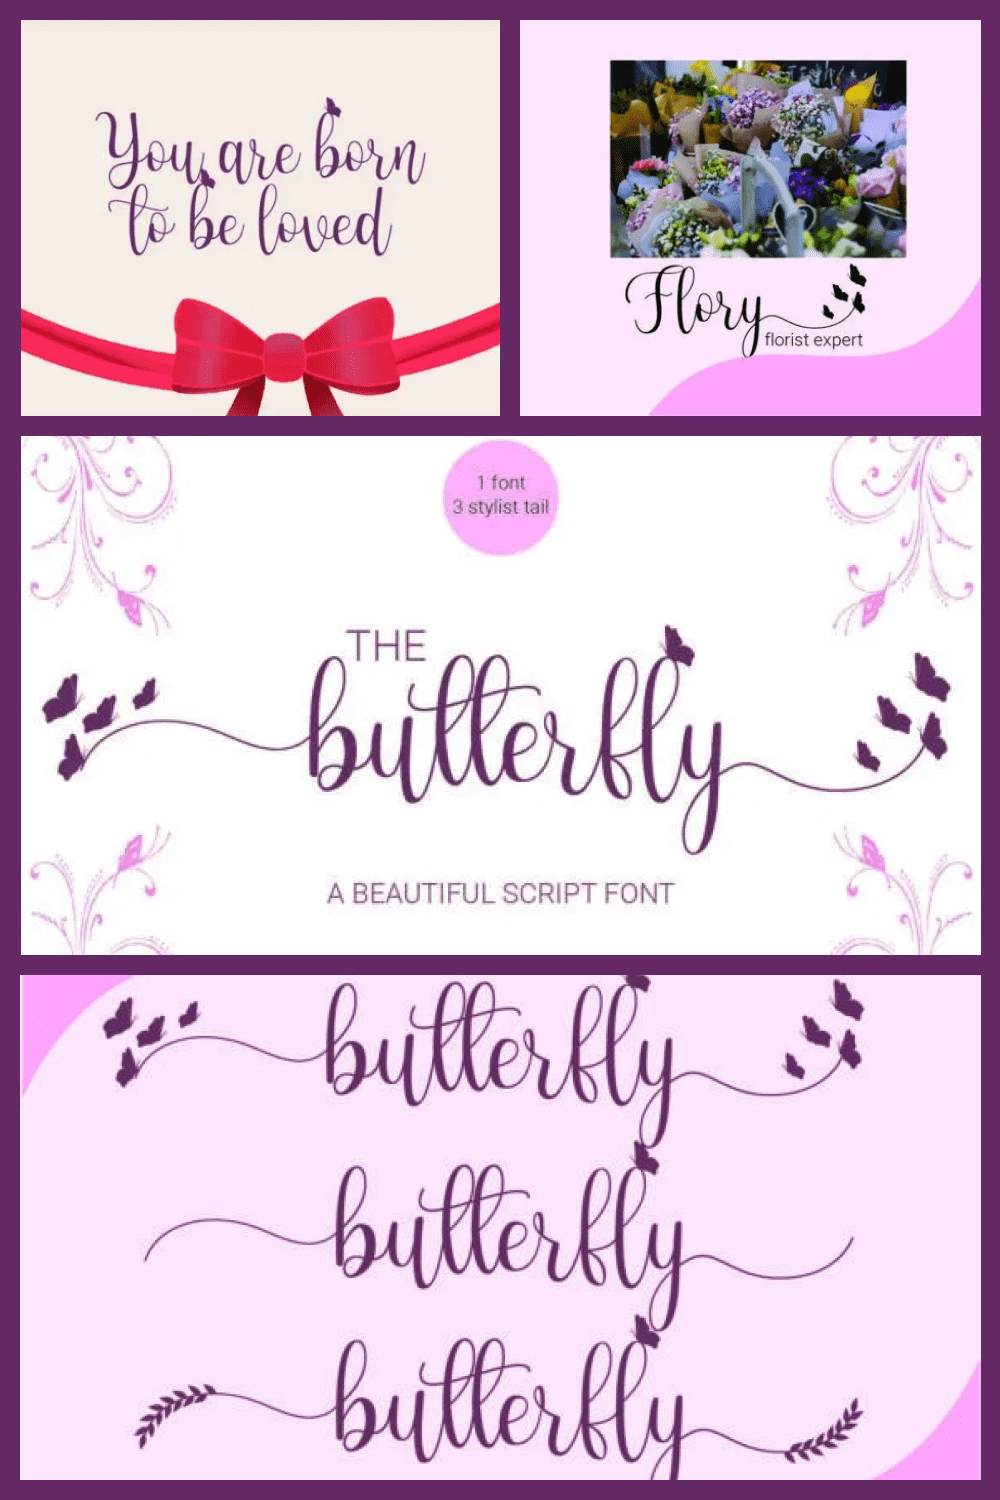 This is a stylish feminine typeface with high detail to present a luxurious style.